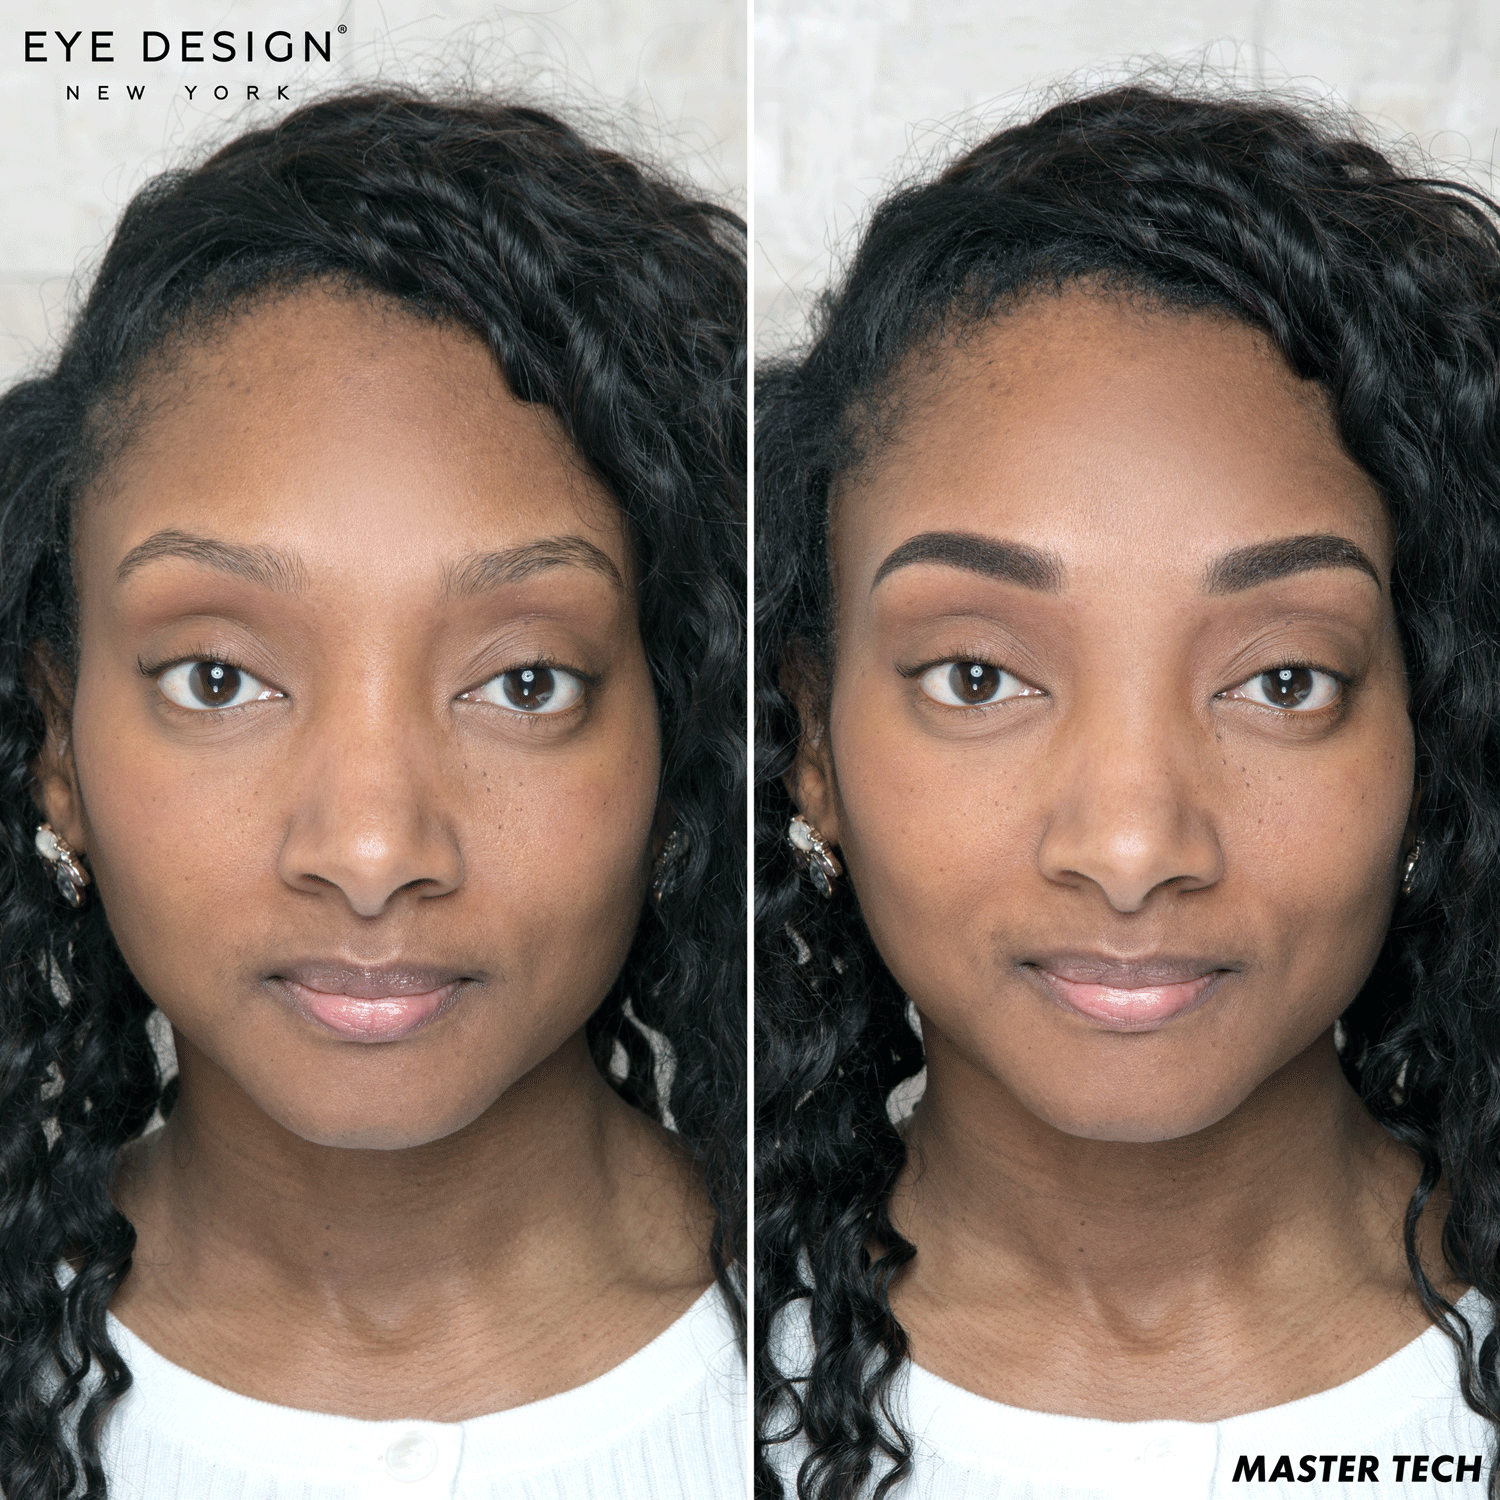 New Online Class: Microblading On Dark Skin - Eye Design University